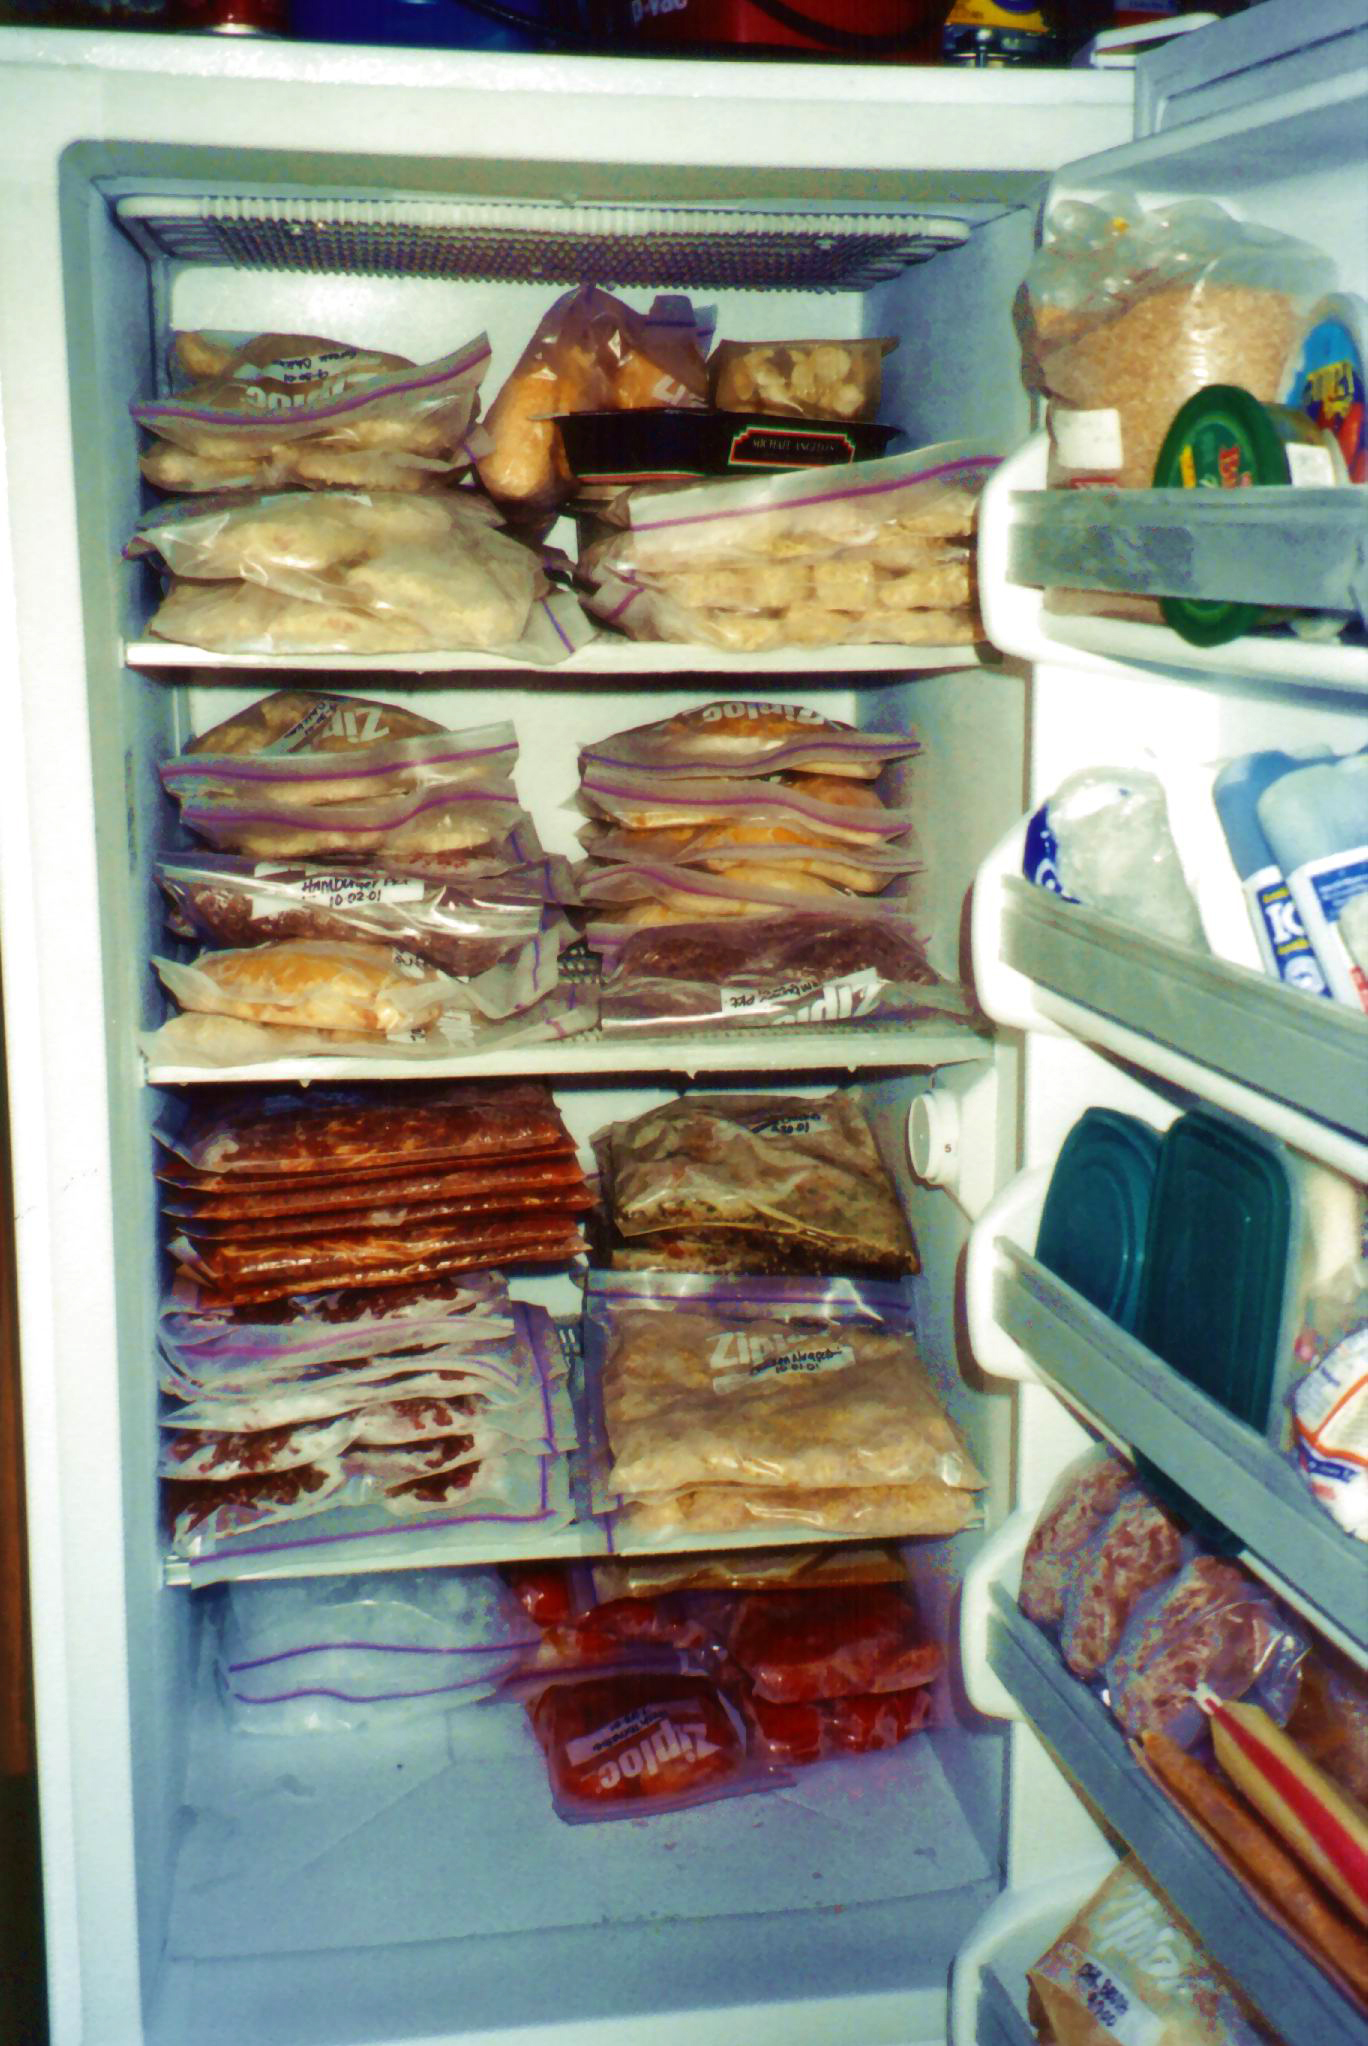 If your freezer loses power, dispose of food that shows any sign of spoilage or if the freezer or food has reached more than 40 degrees. If you don't have a thermometer, refreeze only meat or poultry that still contains ice crystals.